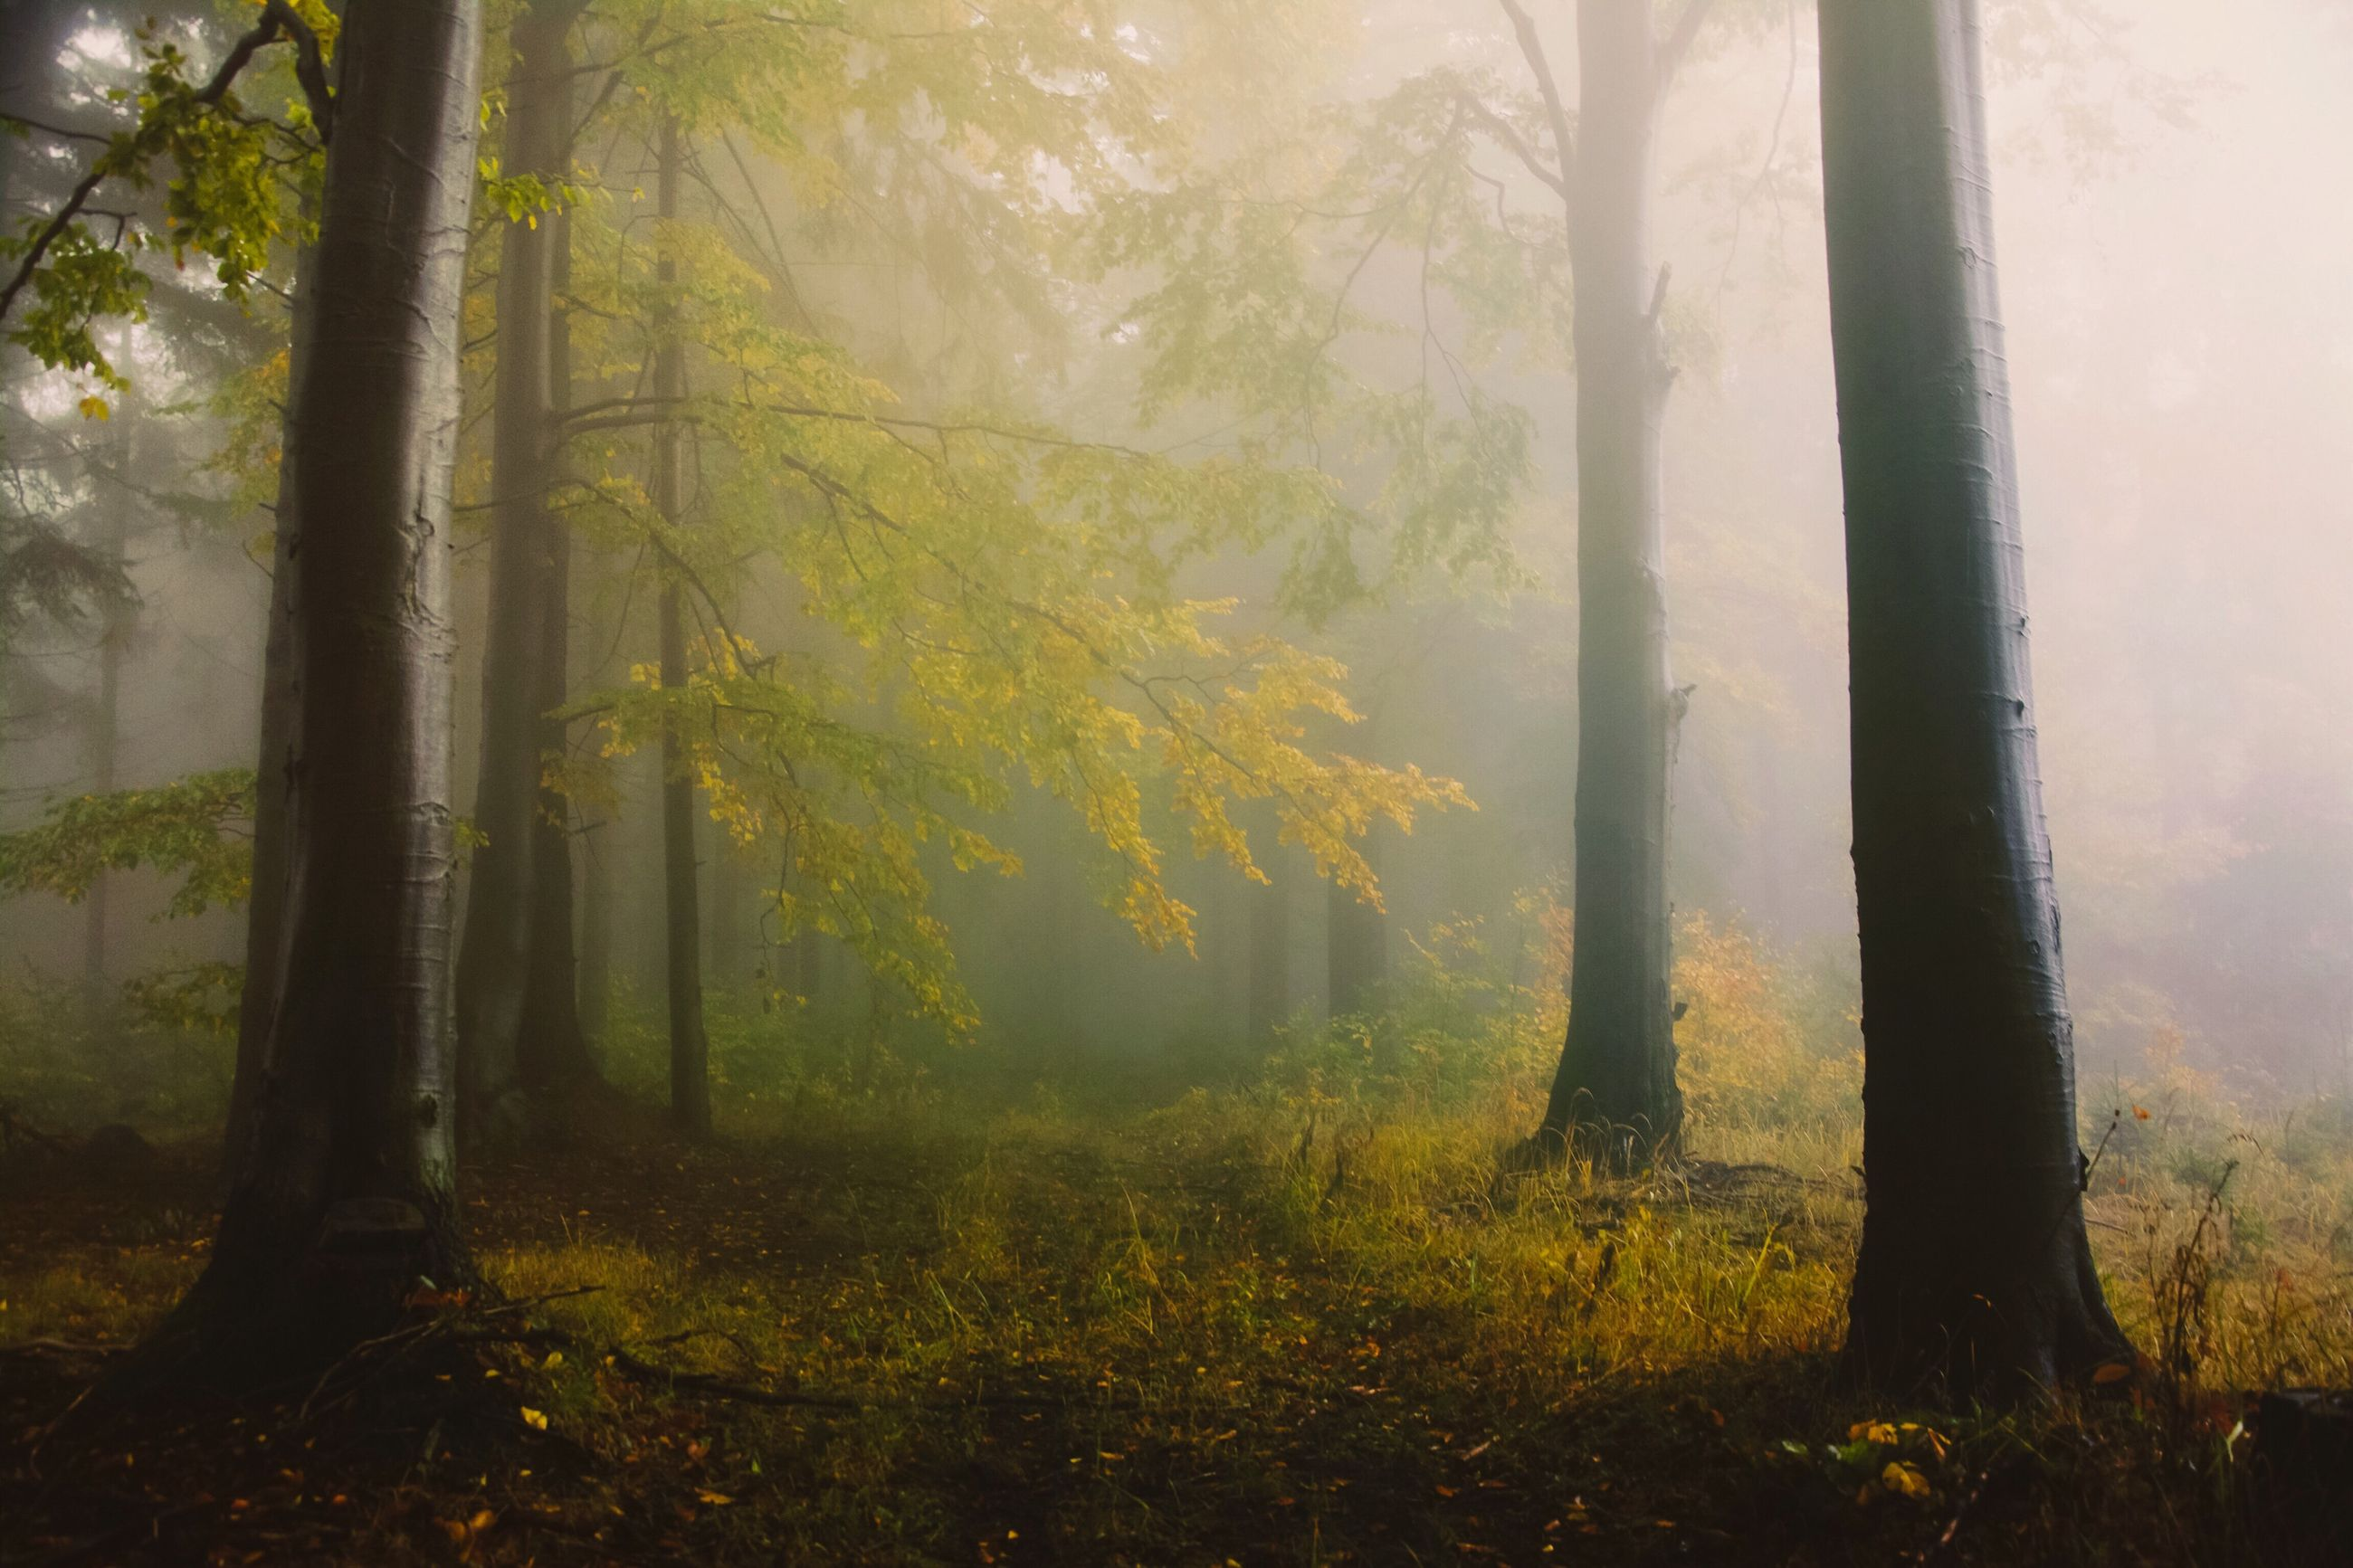 tree, tree trunk, tranquility, forest, fog, growth, tranquil scene, woodland, nature, landscape, foggy, beauty in nature, scenics, grass, field, non-urban scene, sunlight, day, branch, no people